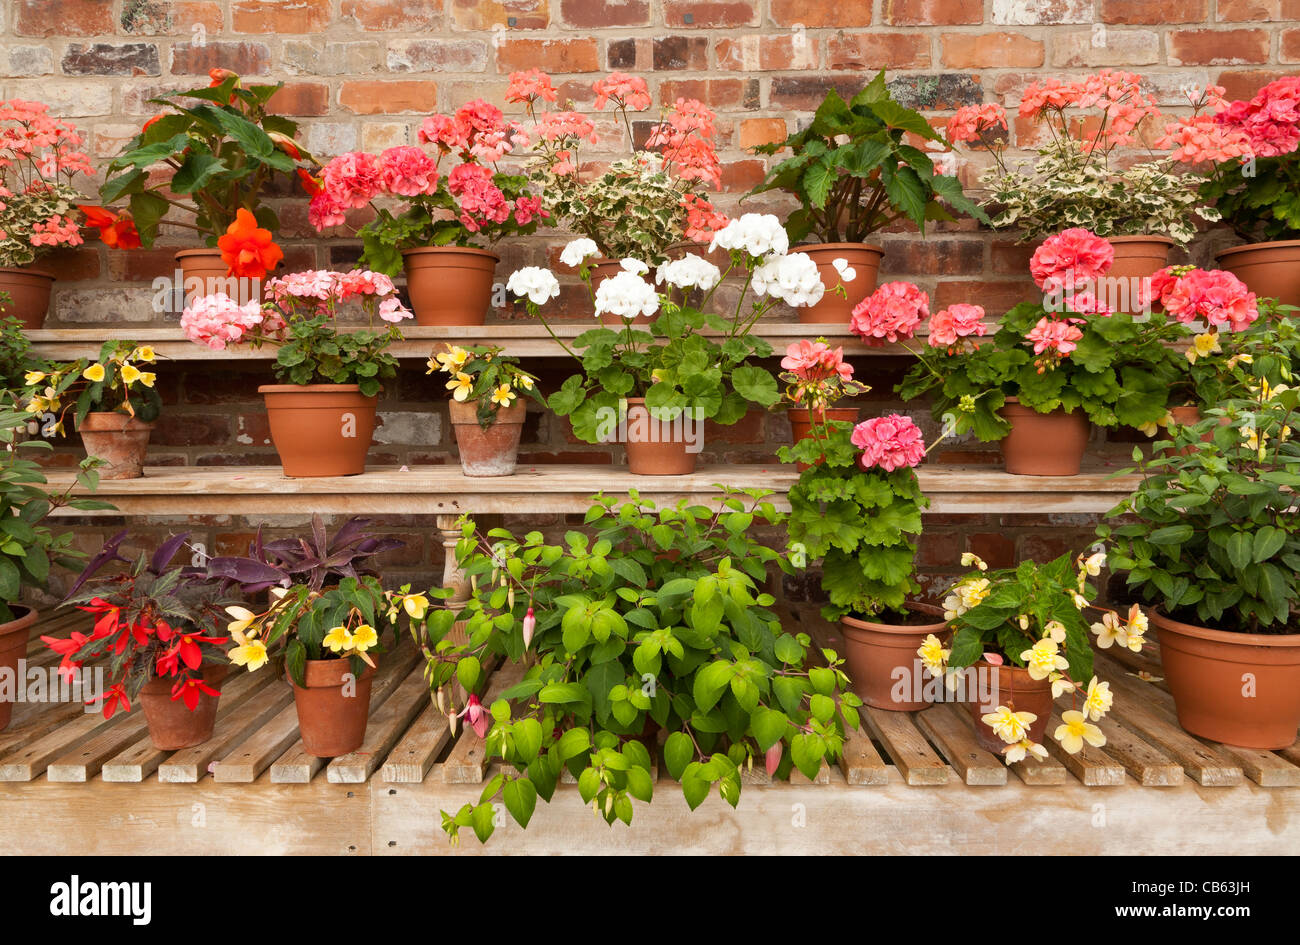 Shelves of potted flowering plants against a red brick wall - Stock Image